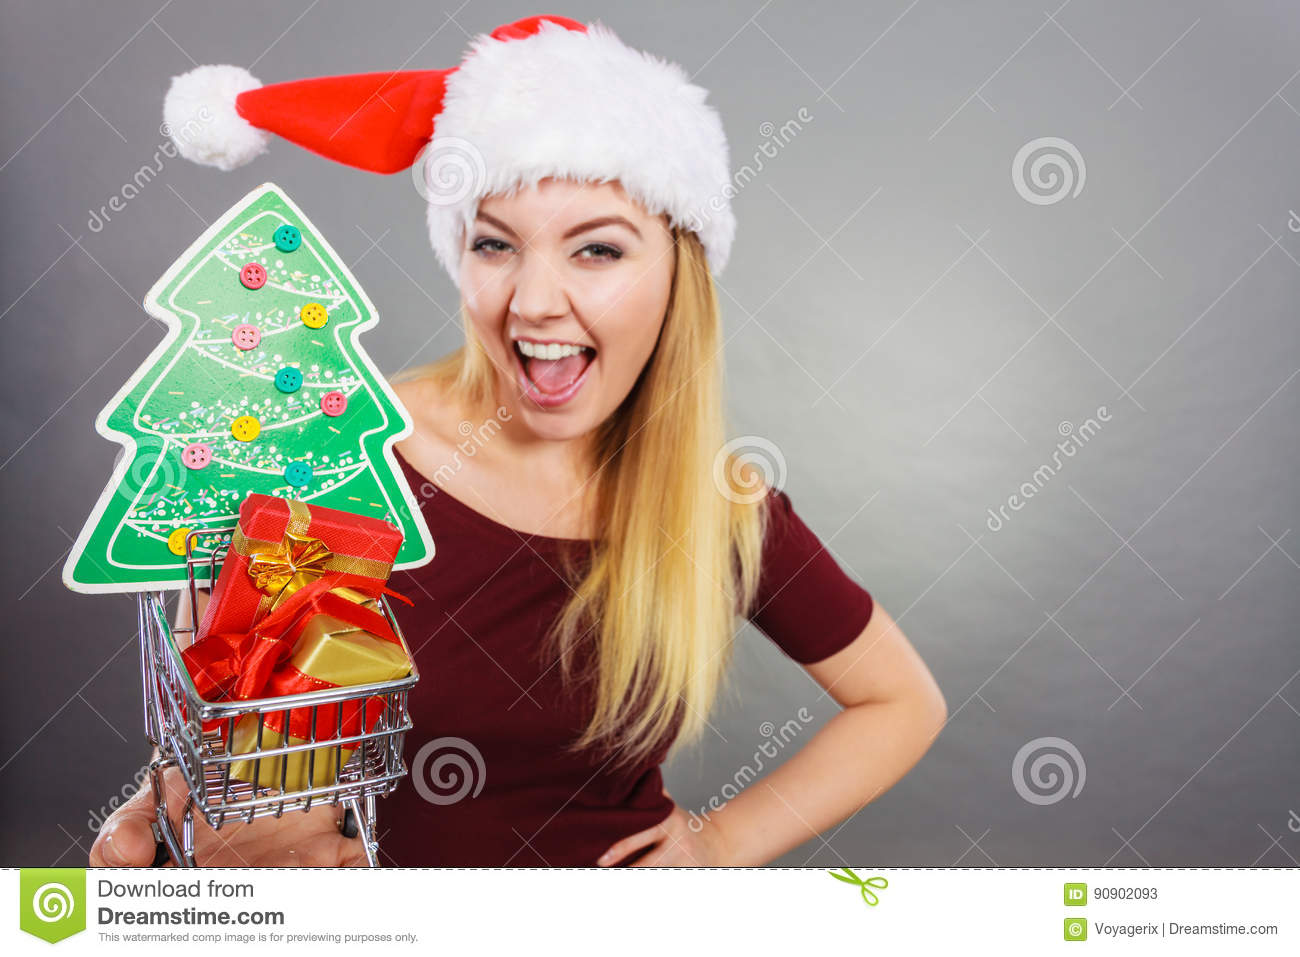 Santa Woman Holding Shopping Cart With Christmas Gifts Stock Image ...